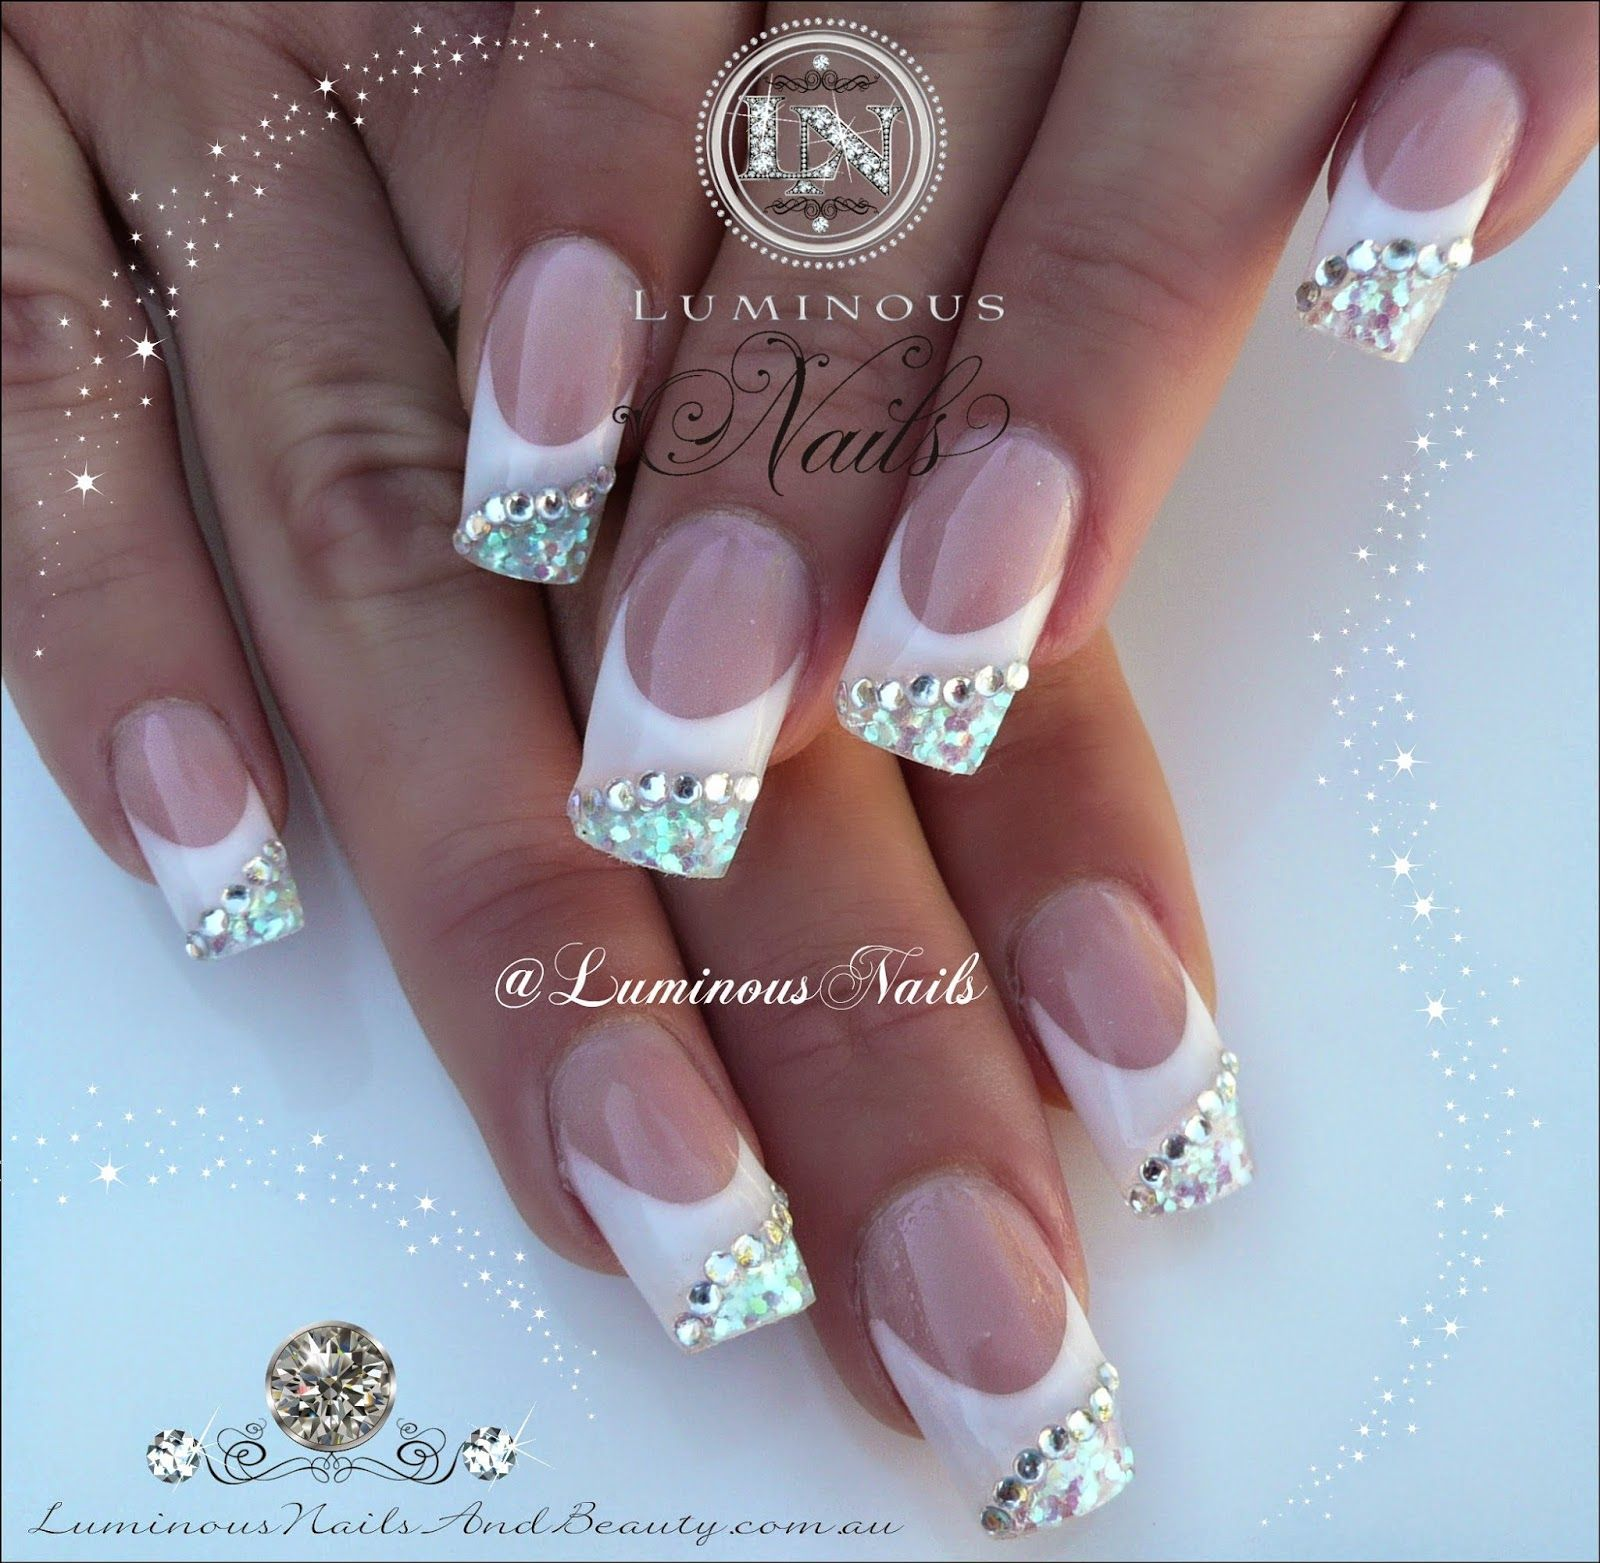 Luminous Nails: White & Silver Nails with Bling... | Nail ideas ...